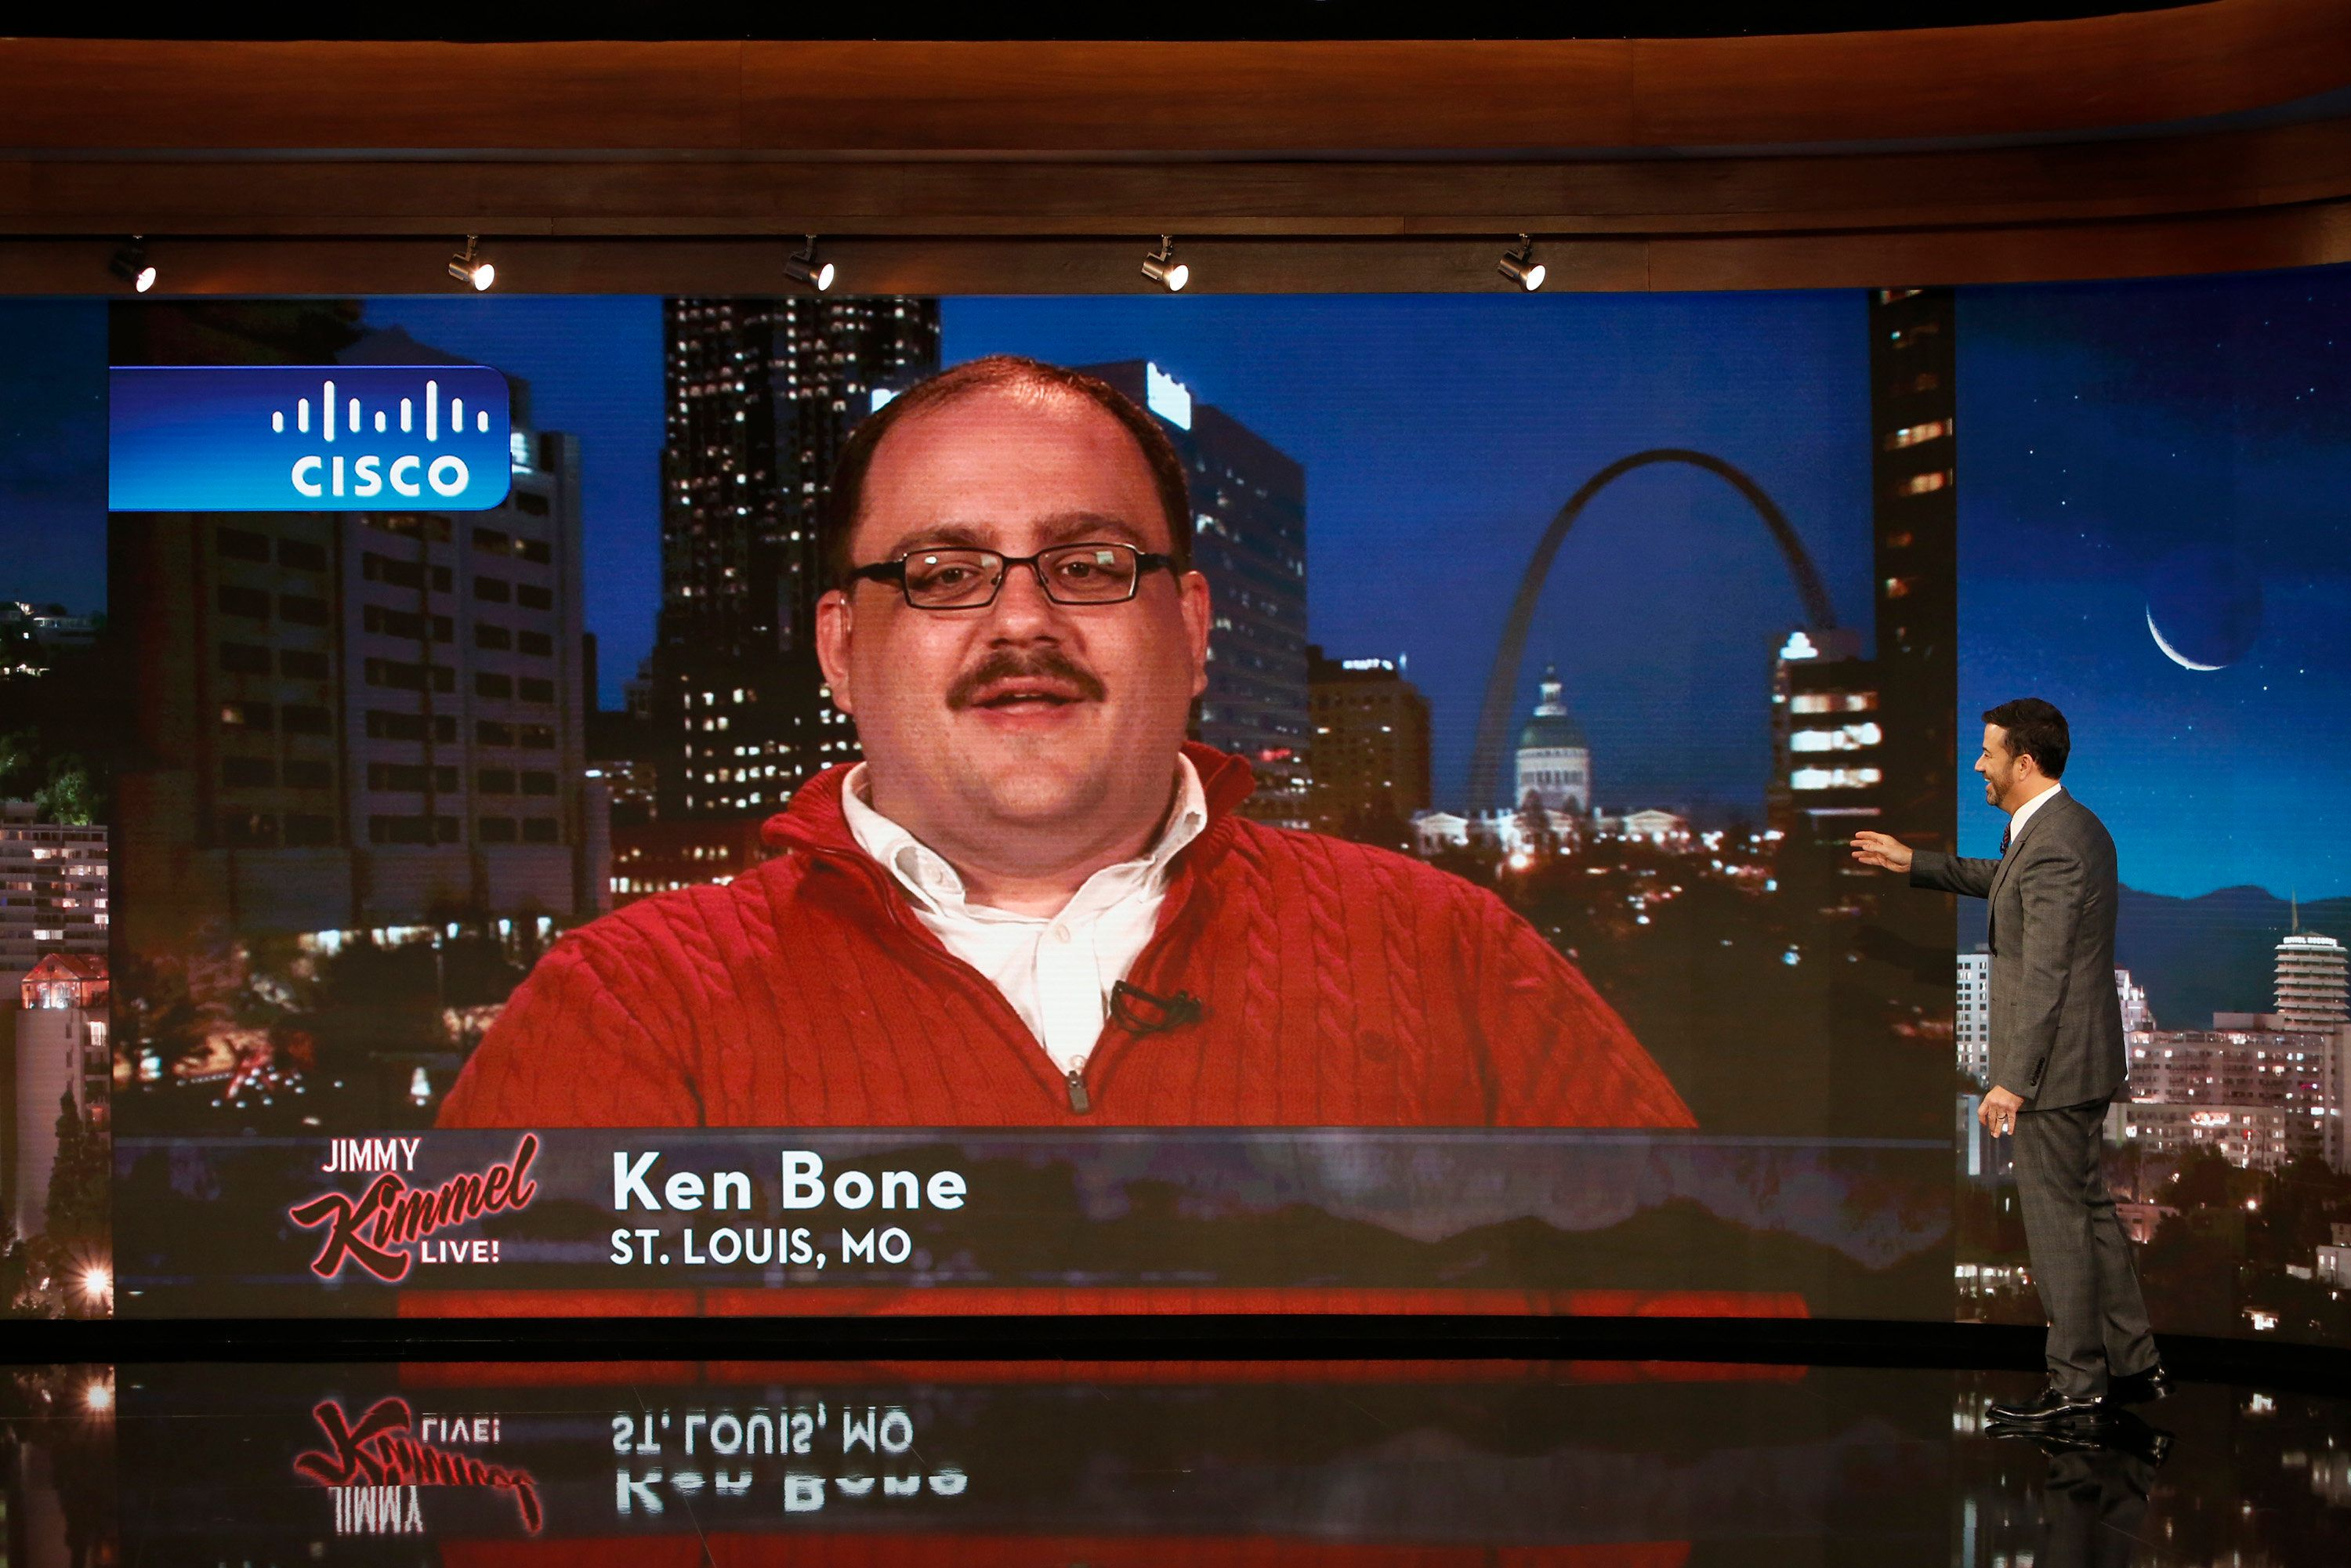 Ken Bone became a household name back in October when he appeared during a presidential debate to ask a question about energy